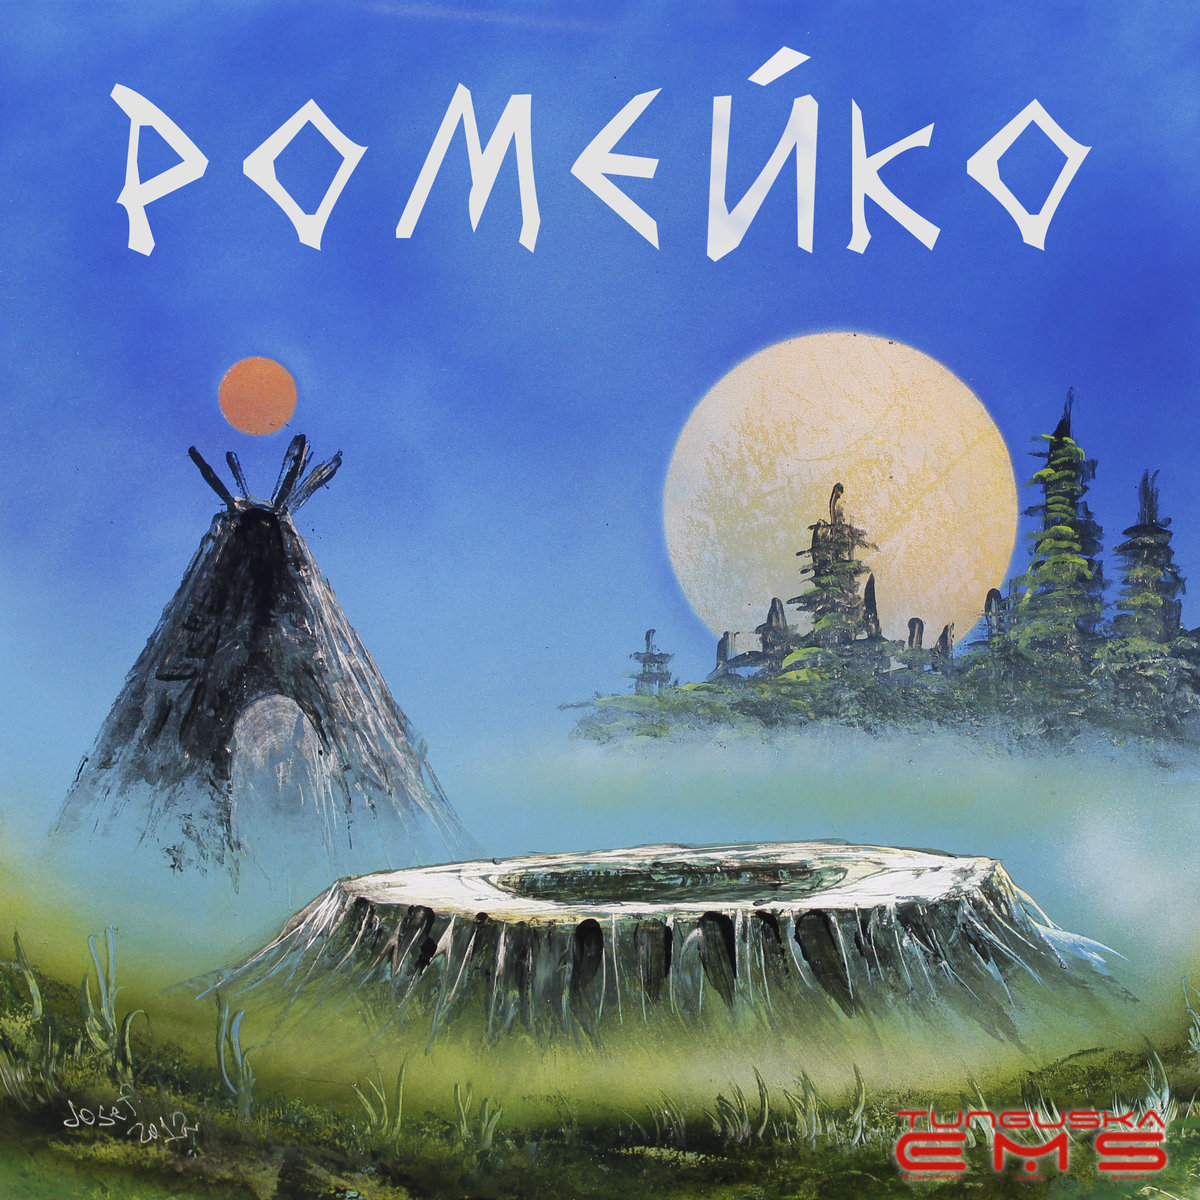 Craters - Romeiko @ 'Craters - Romeiko' album (electronic, ambient)